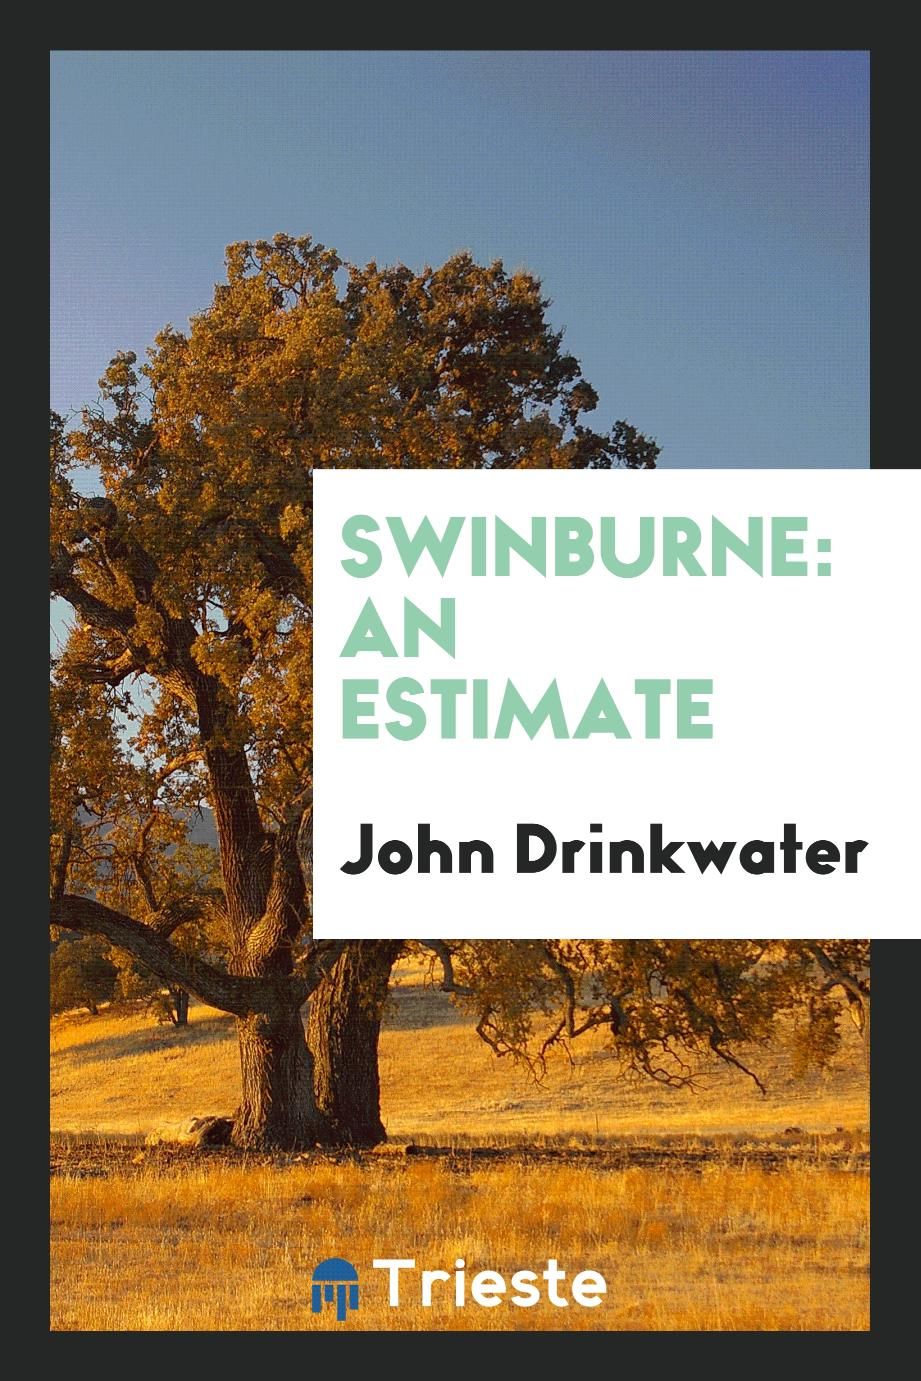 Swinburne: an estimate